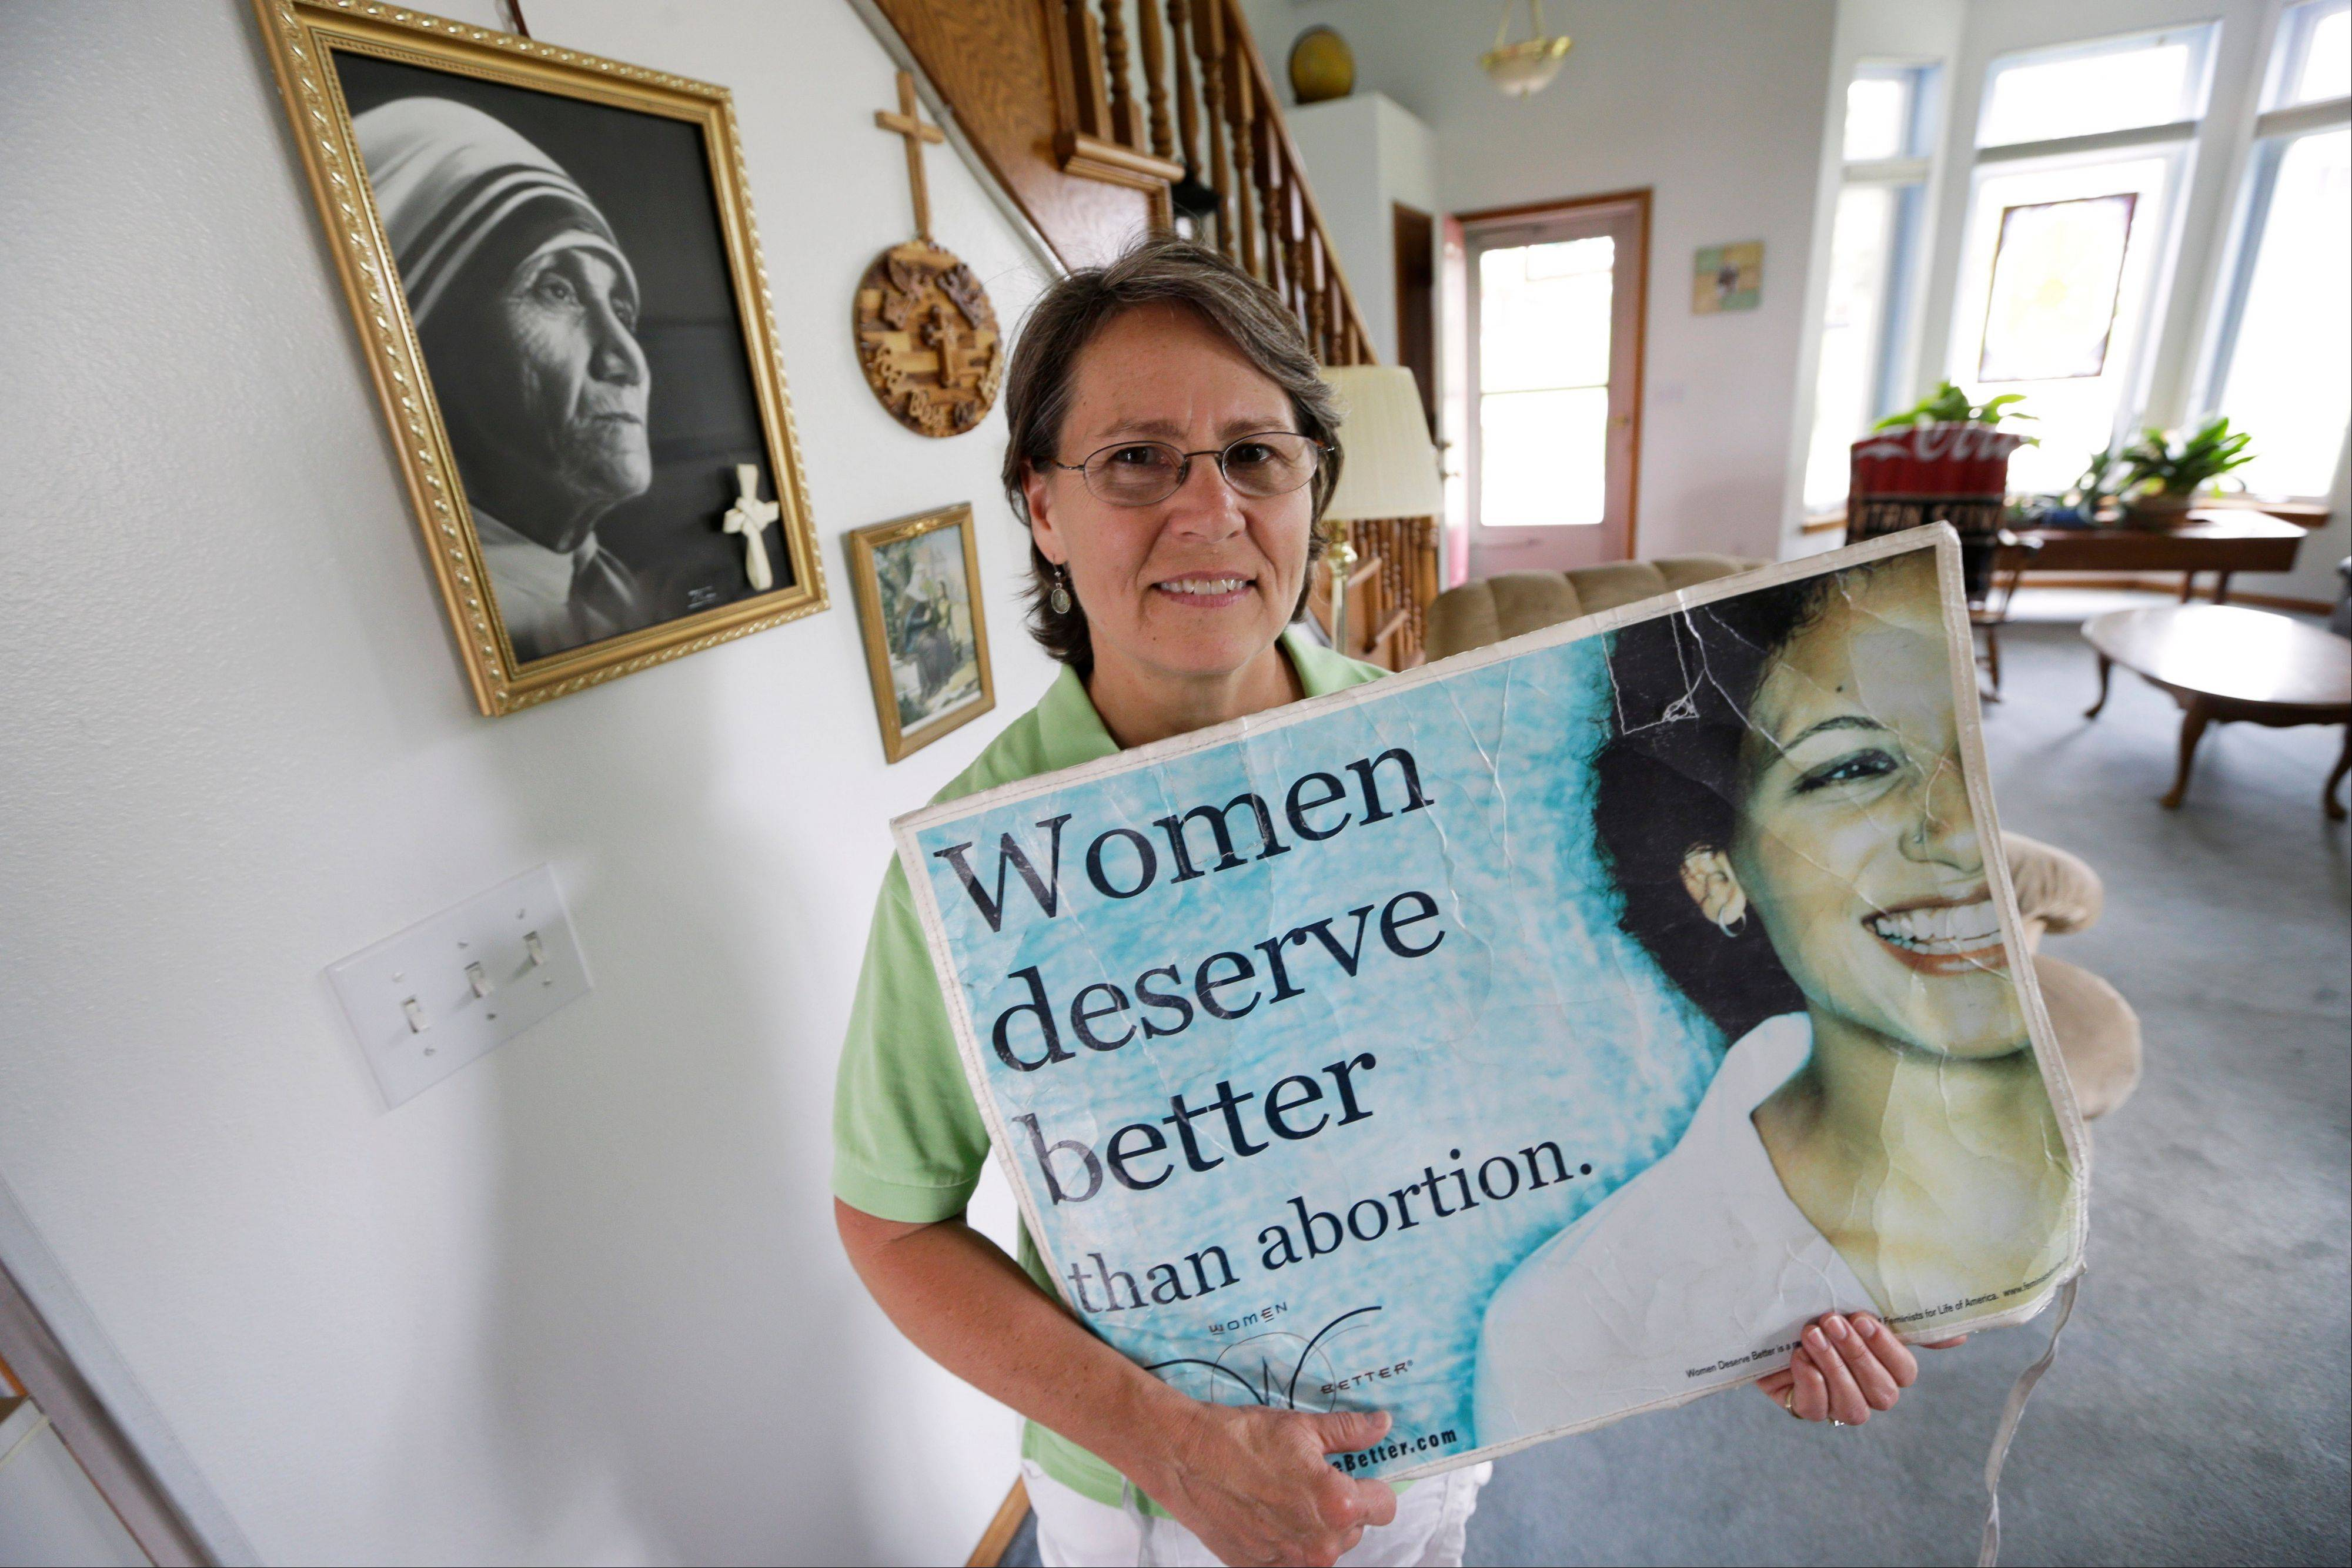 Coalition for Life of Iowa president Sue Martinek holds a sign in her home, Tuesday